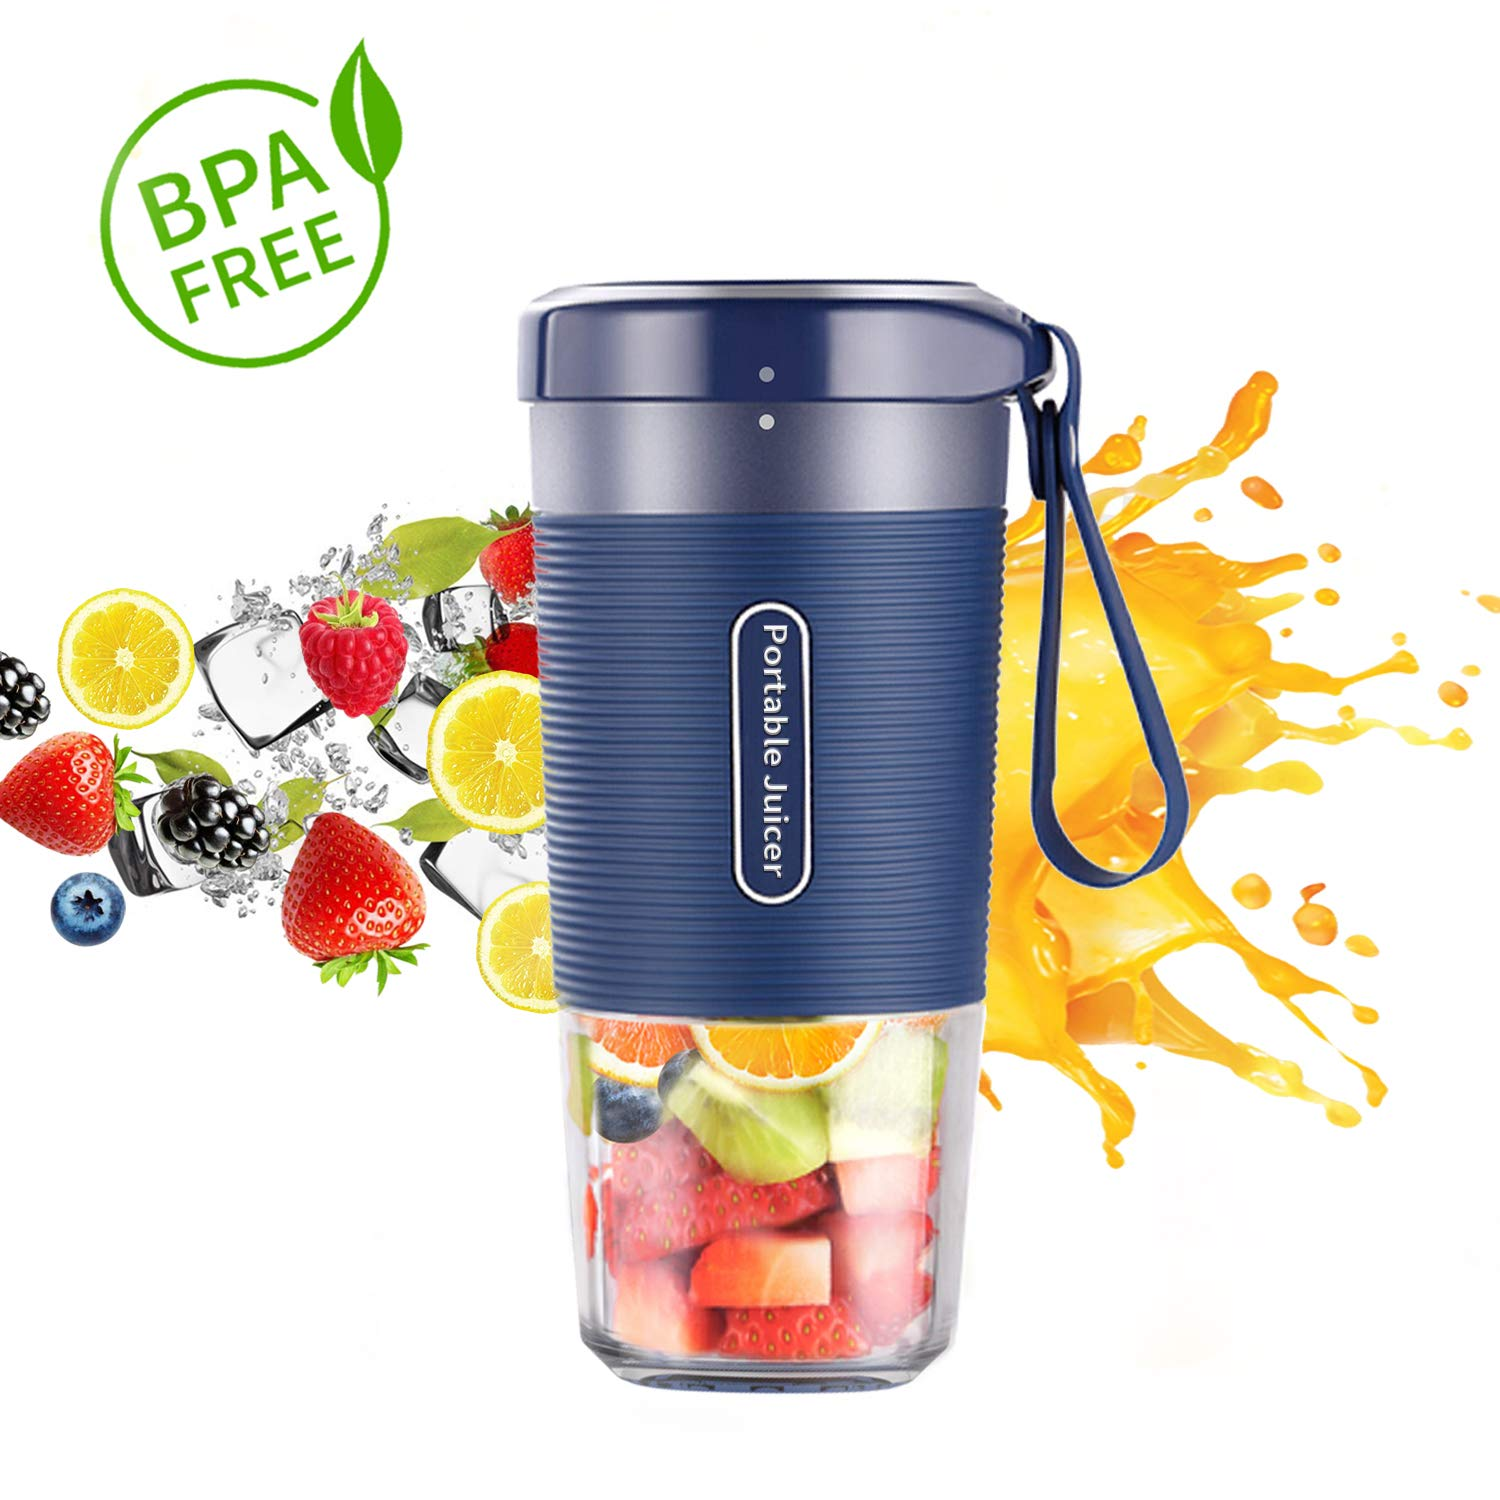 Portable Blender, Cordless Personal Blender Juicer, Mini Mixer, Waterproof Smoothie Blender With USB Rechargeable, BPA Free Tritan 300ml, Home, Office, Sports, Travel, Outdoors